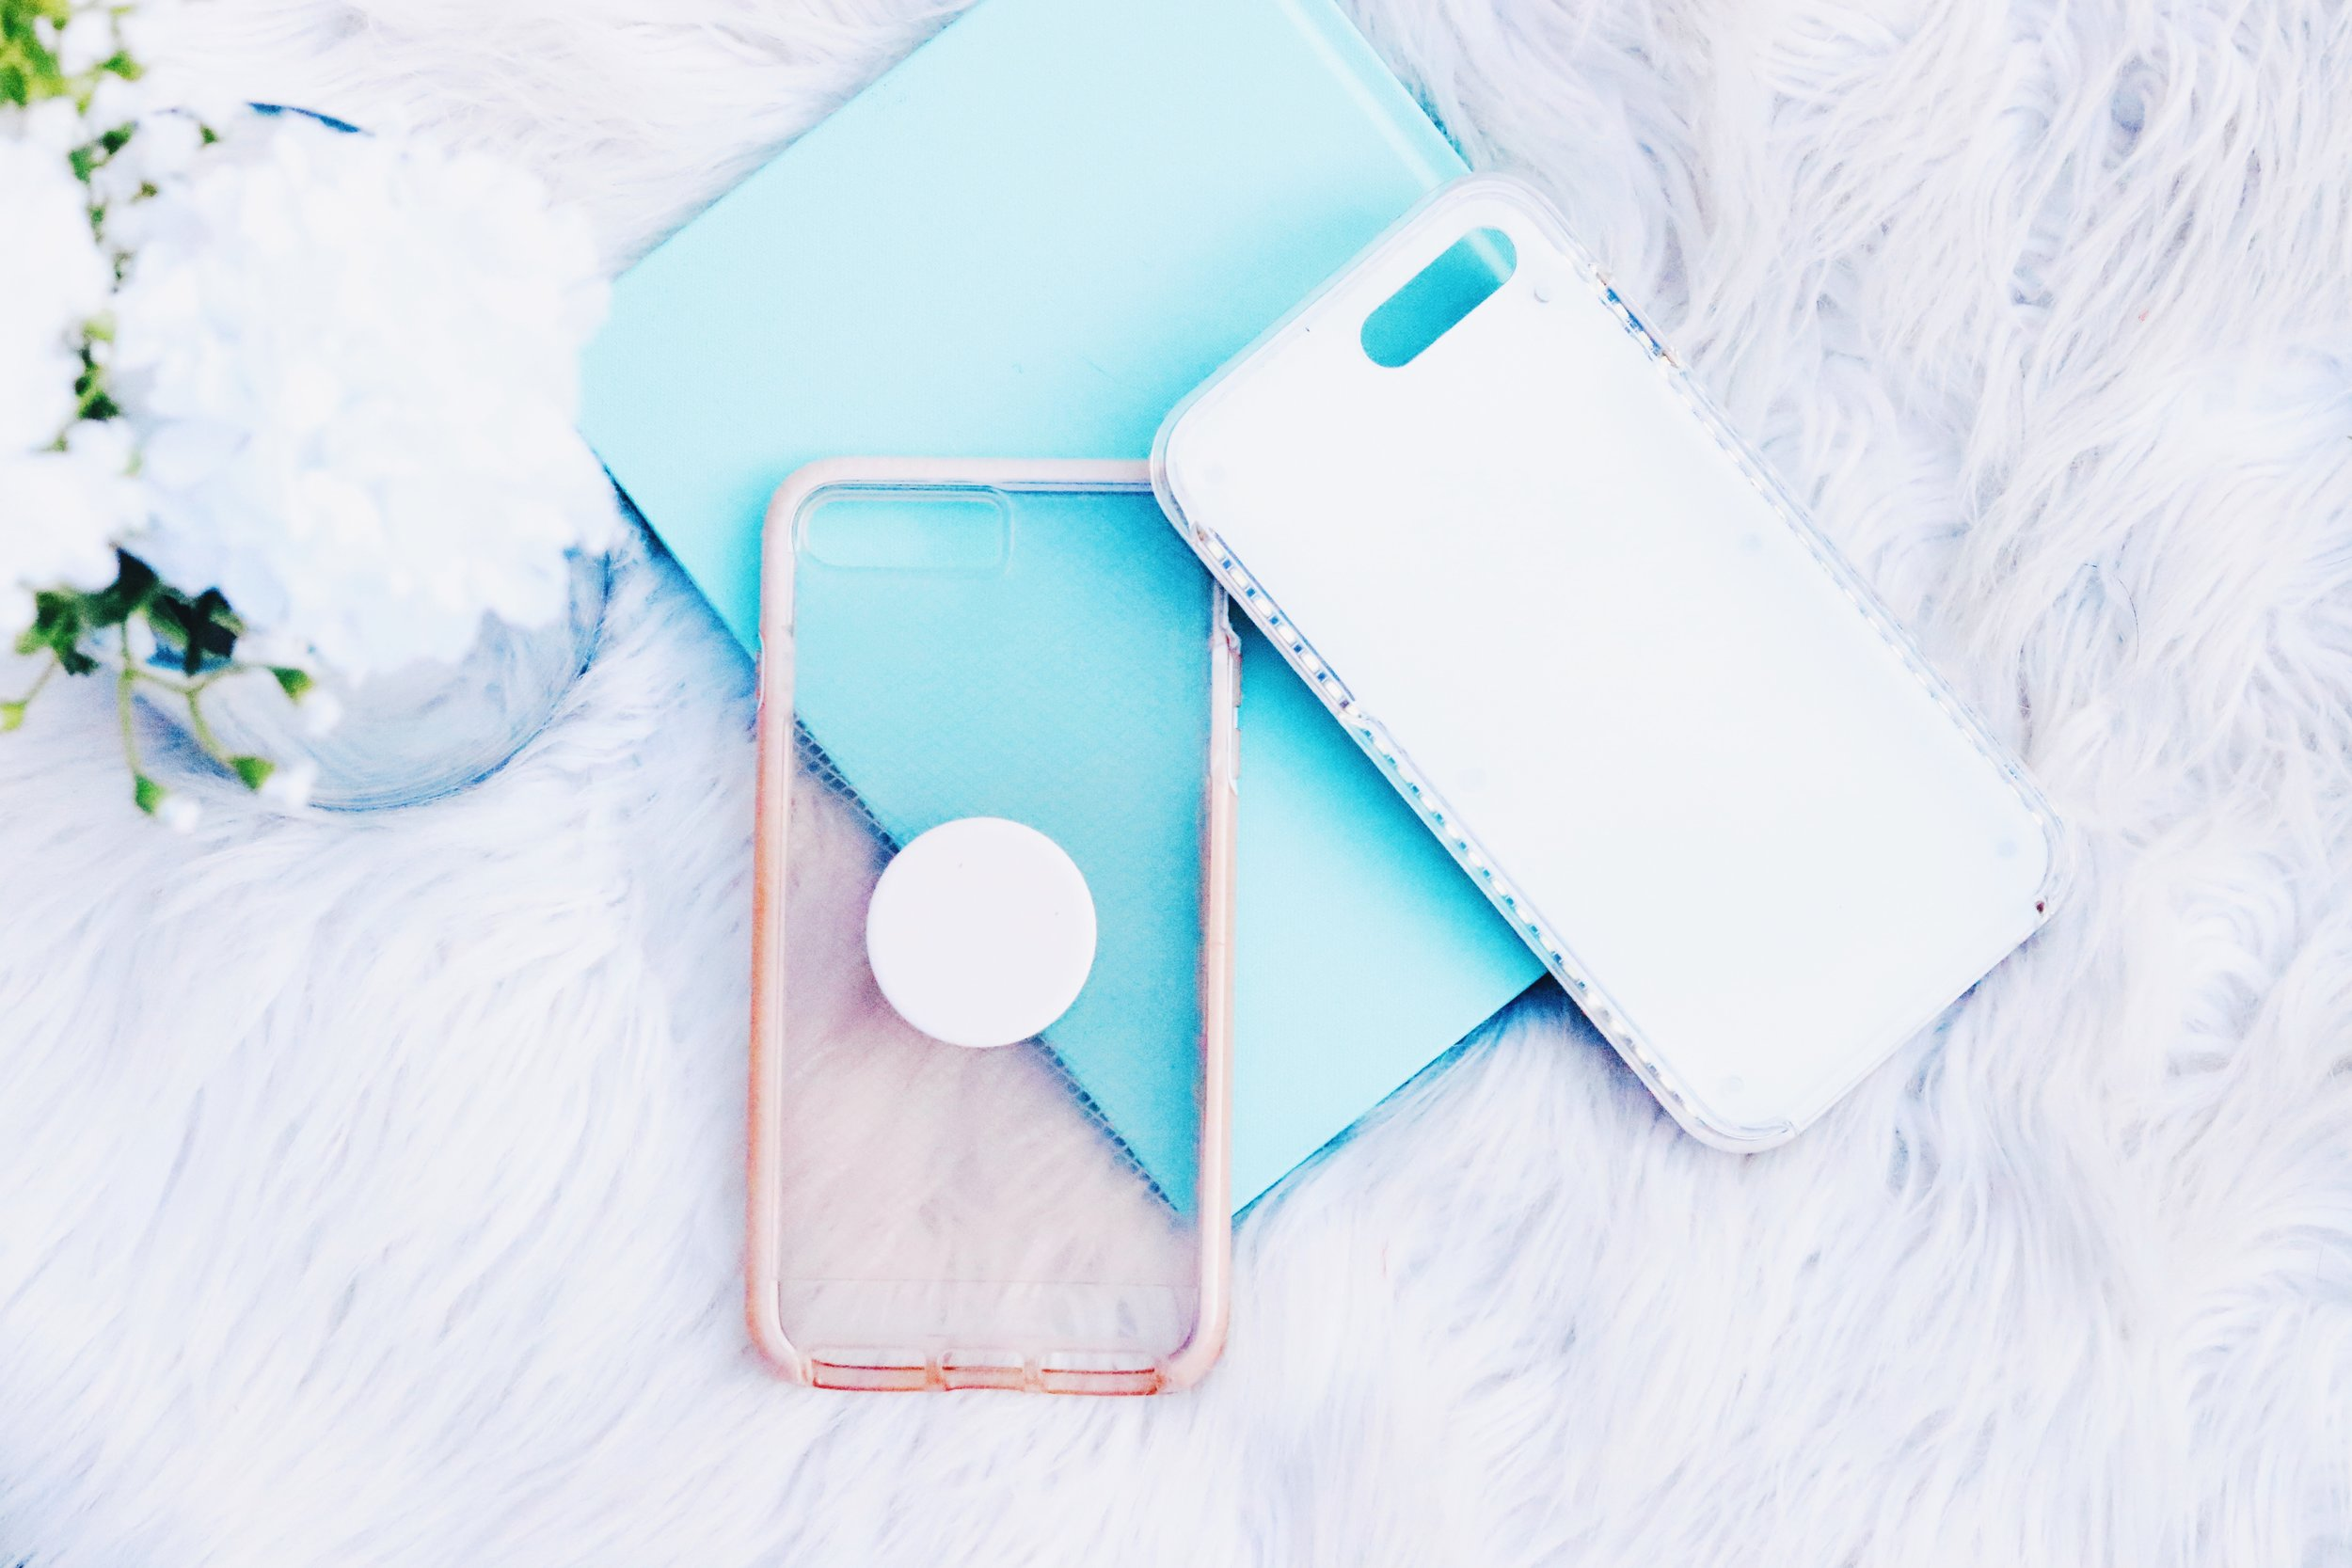 These are my go to cases! Of course I rely on my selfie light up case whenever I'm out on the town at night! This super simple clear case is extremely protective, my fav color and the best for pop-sockets!